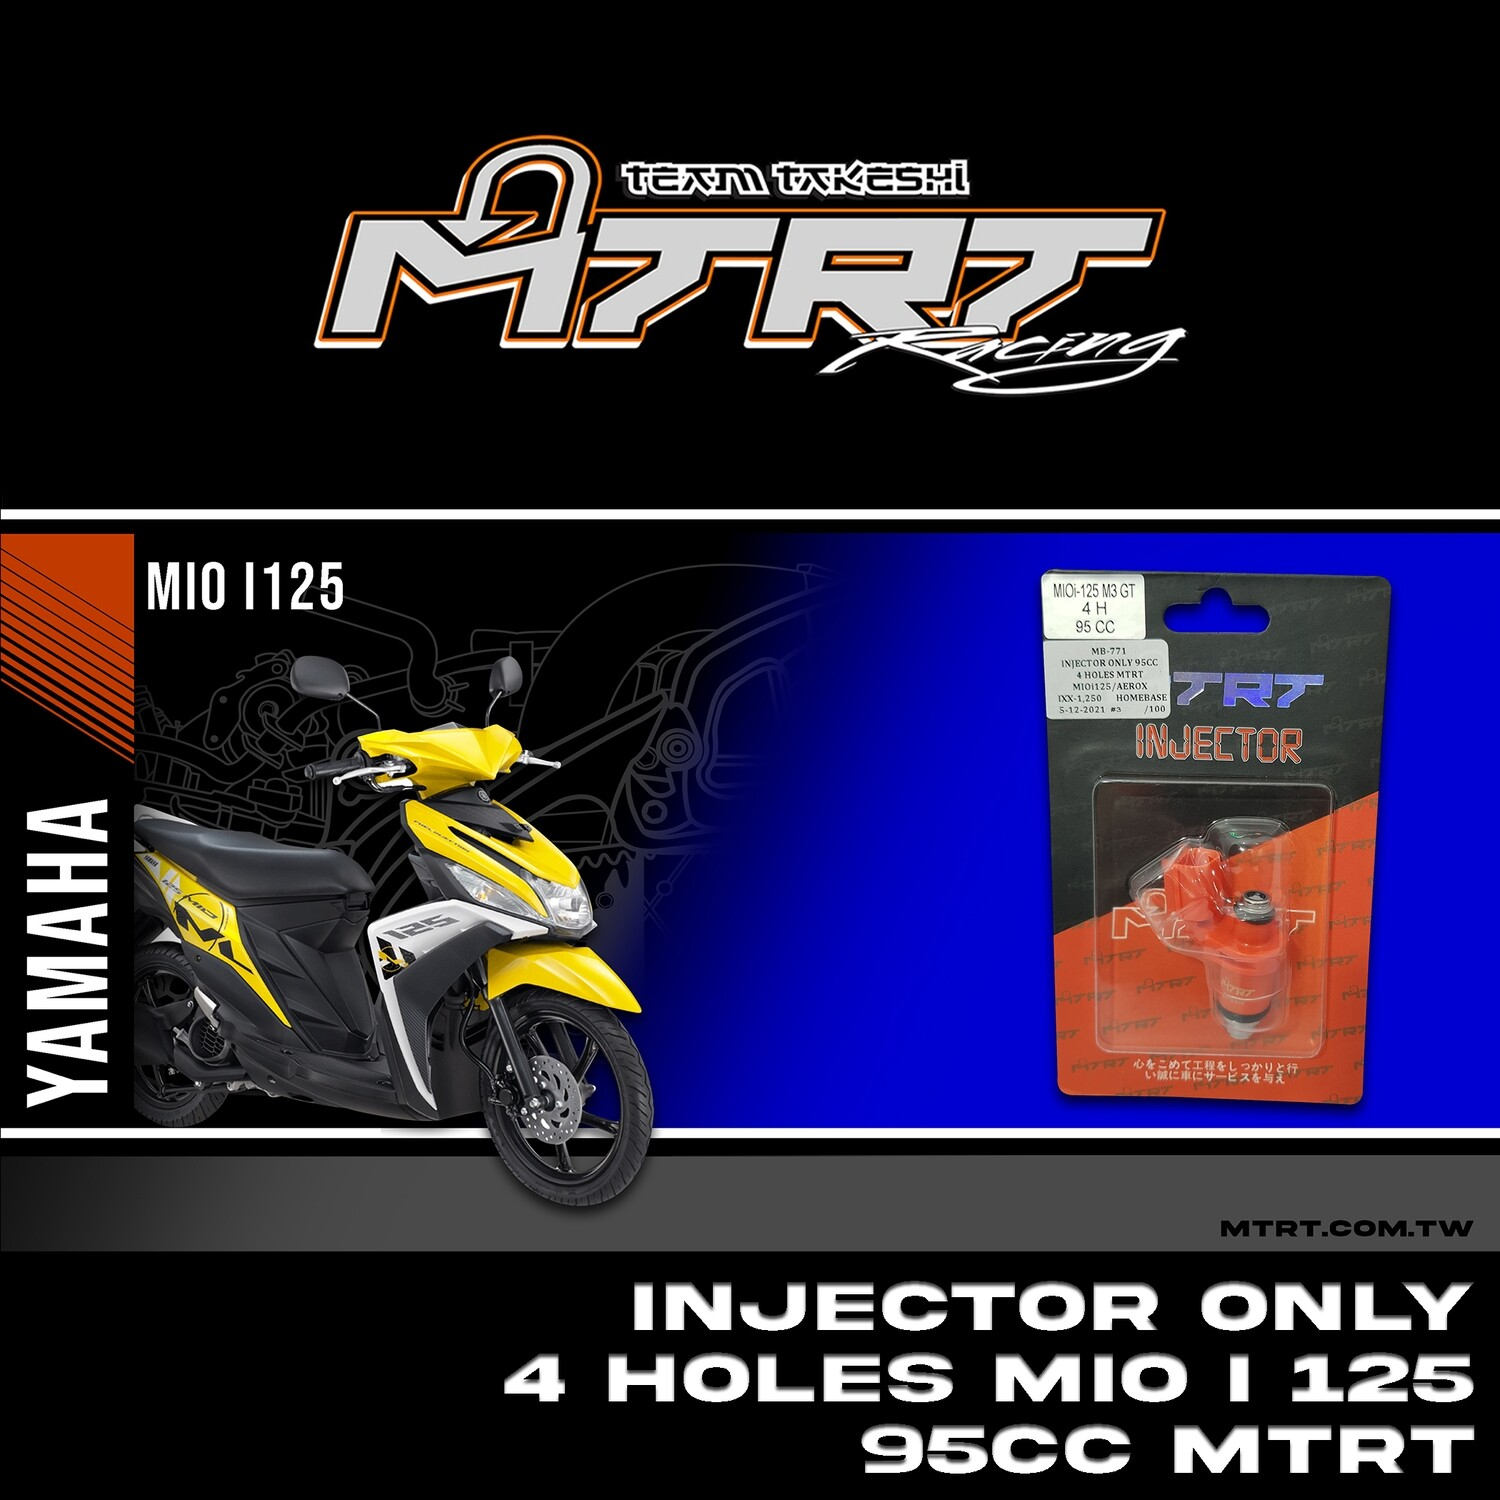 INJECTOR ONLY 4HOLES  MIOi125/AEROX  95CC MTRT